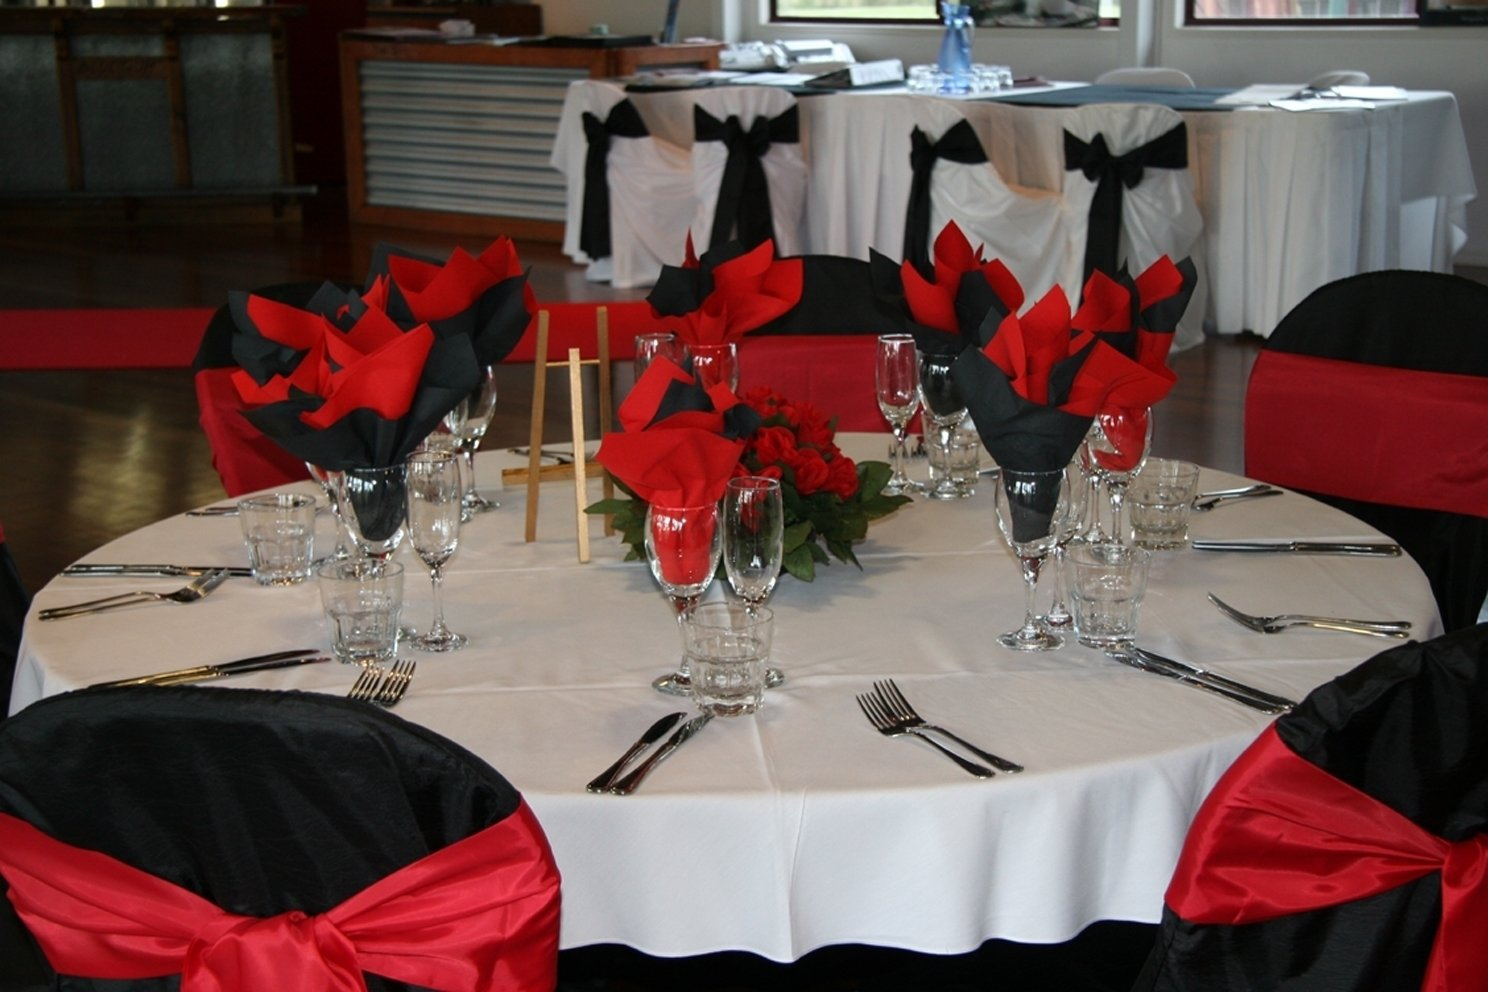 10 Elegant Red Black And White Wedding Reception Ideas wedding table decorations red black and white reception decoration 2020